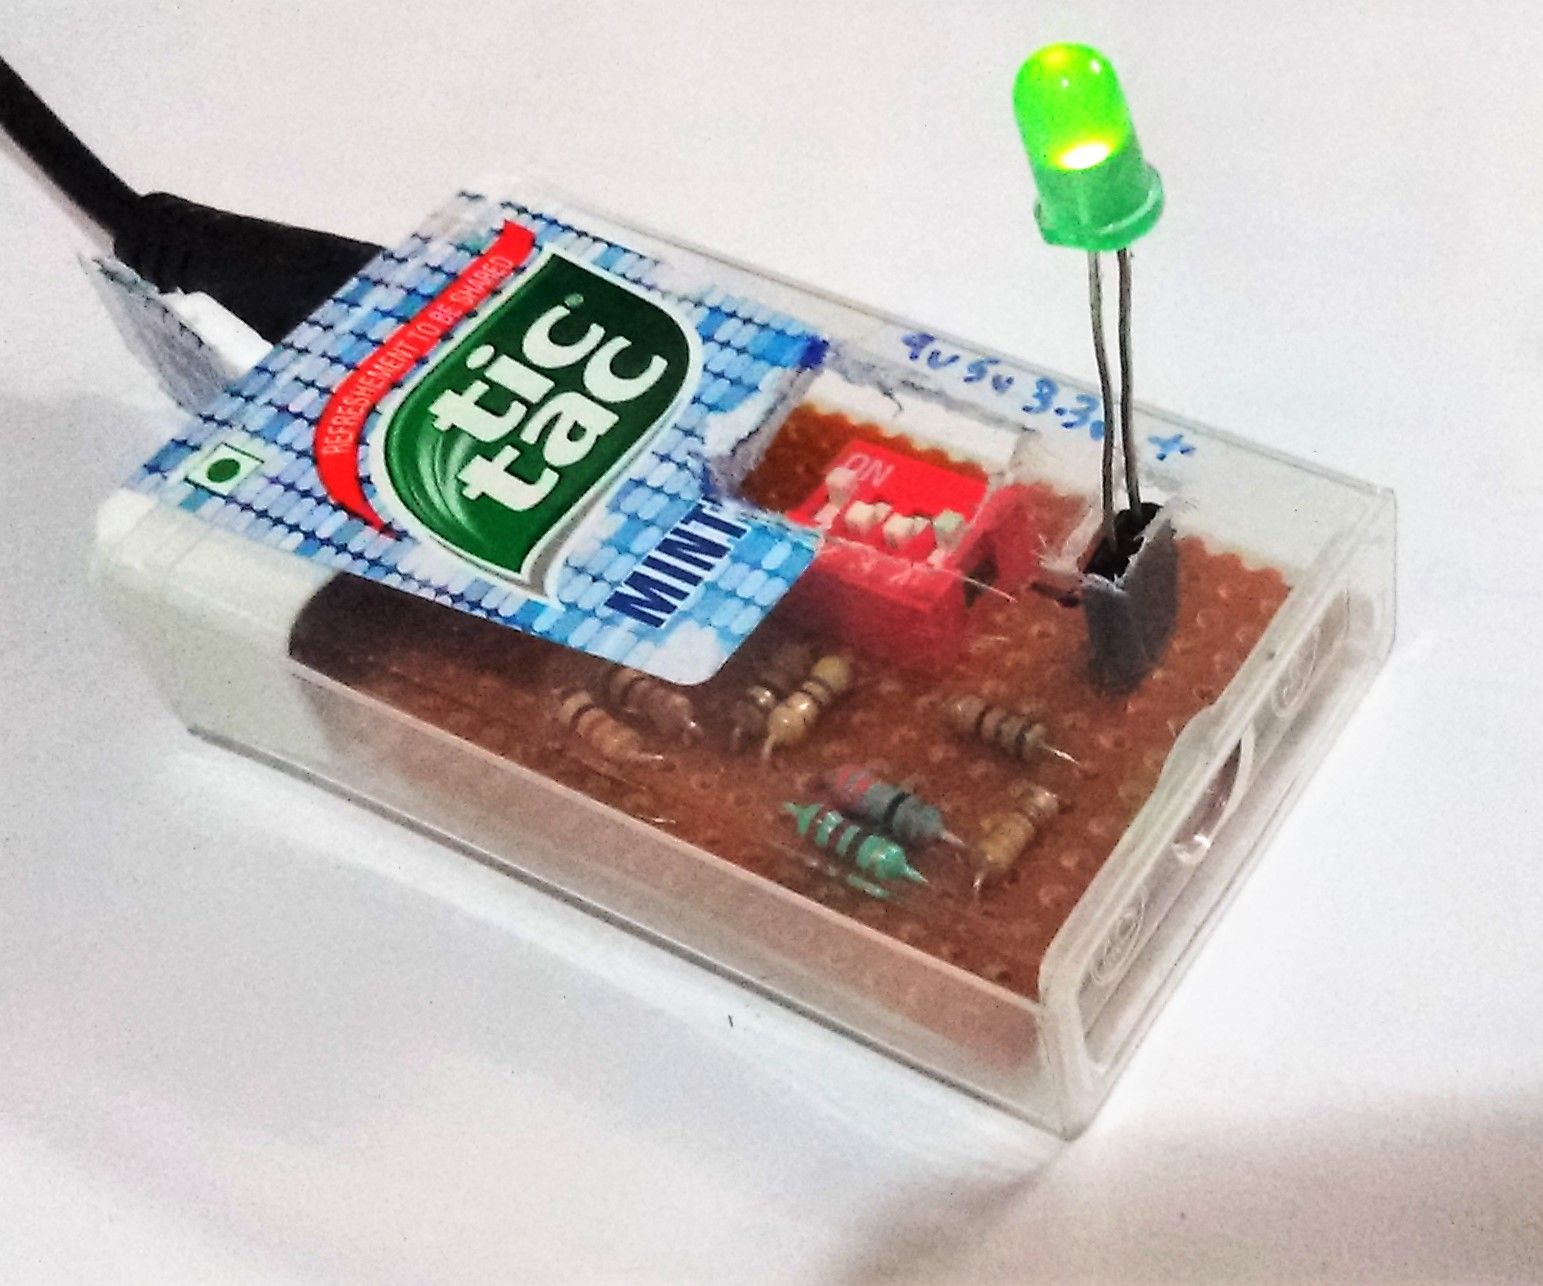 The Tic Tac Adjustable Power Supply